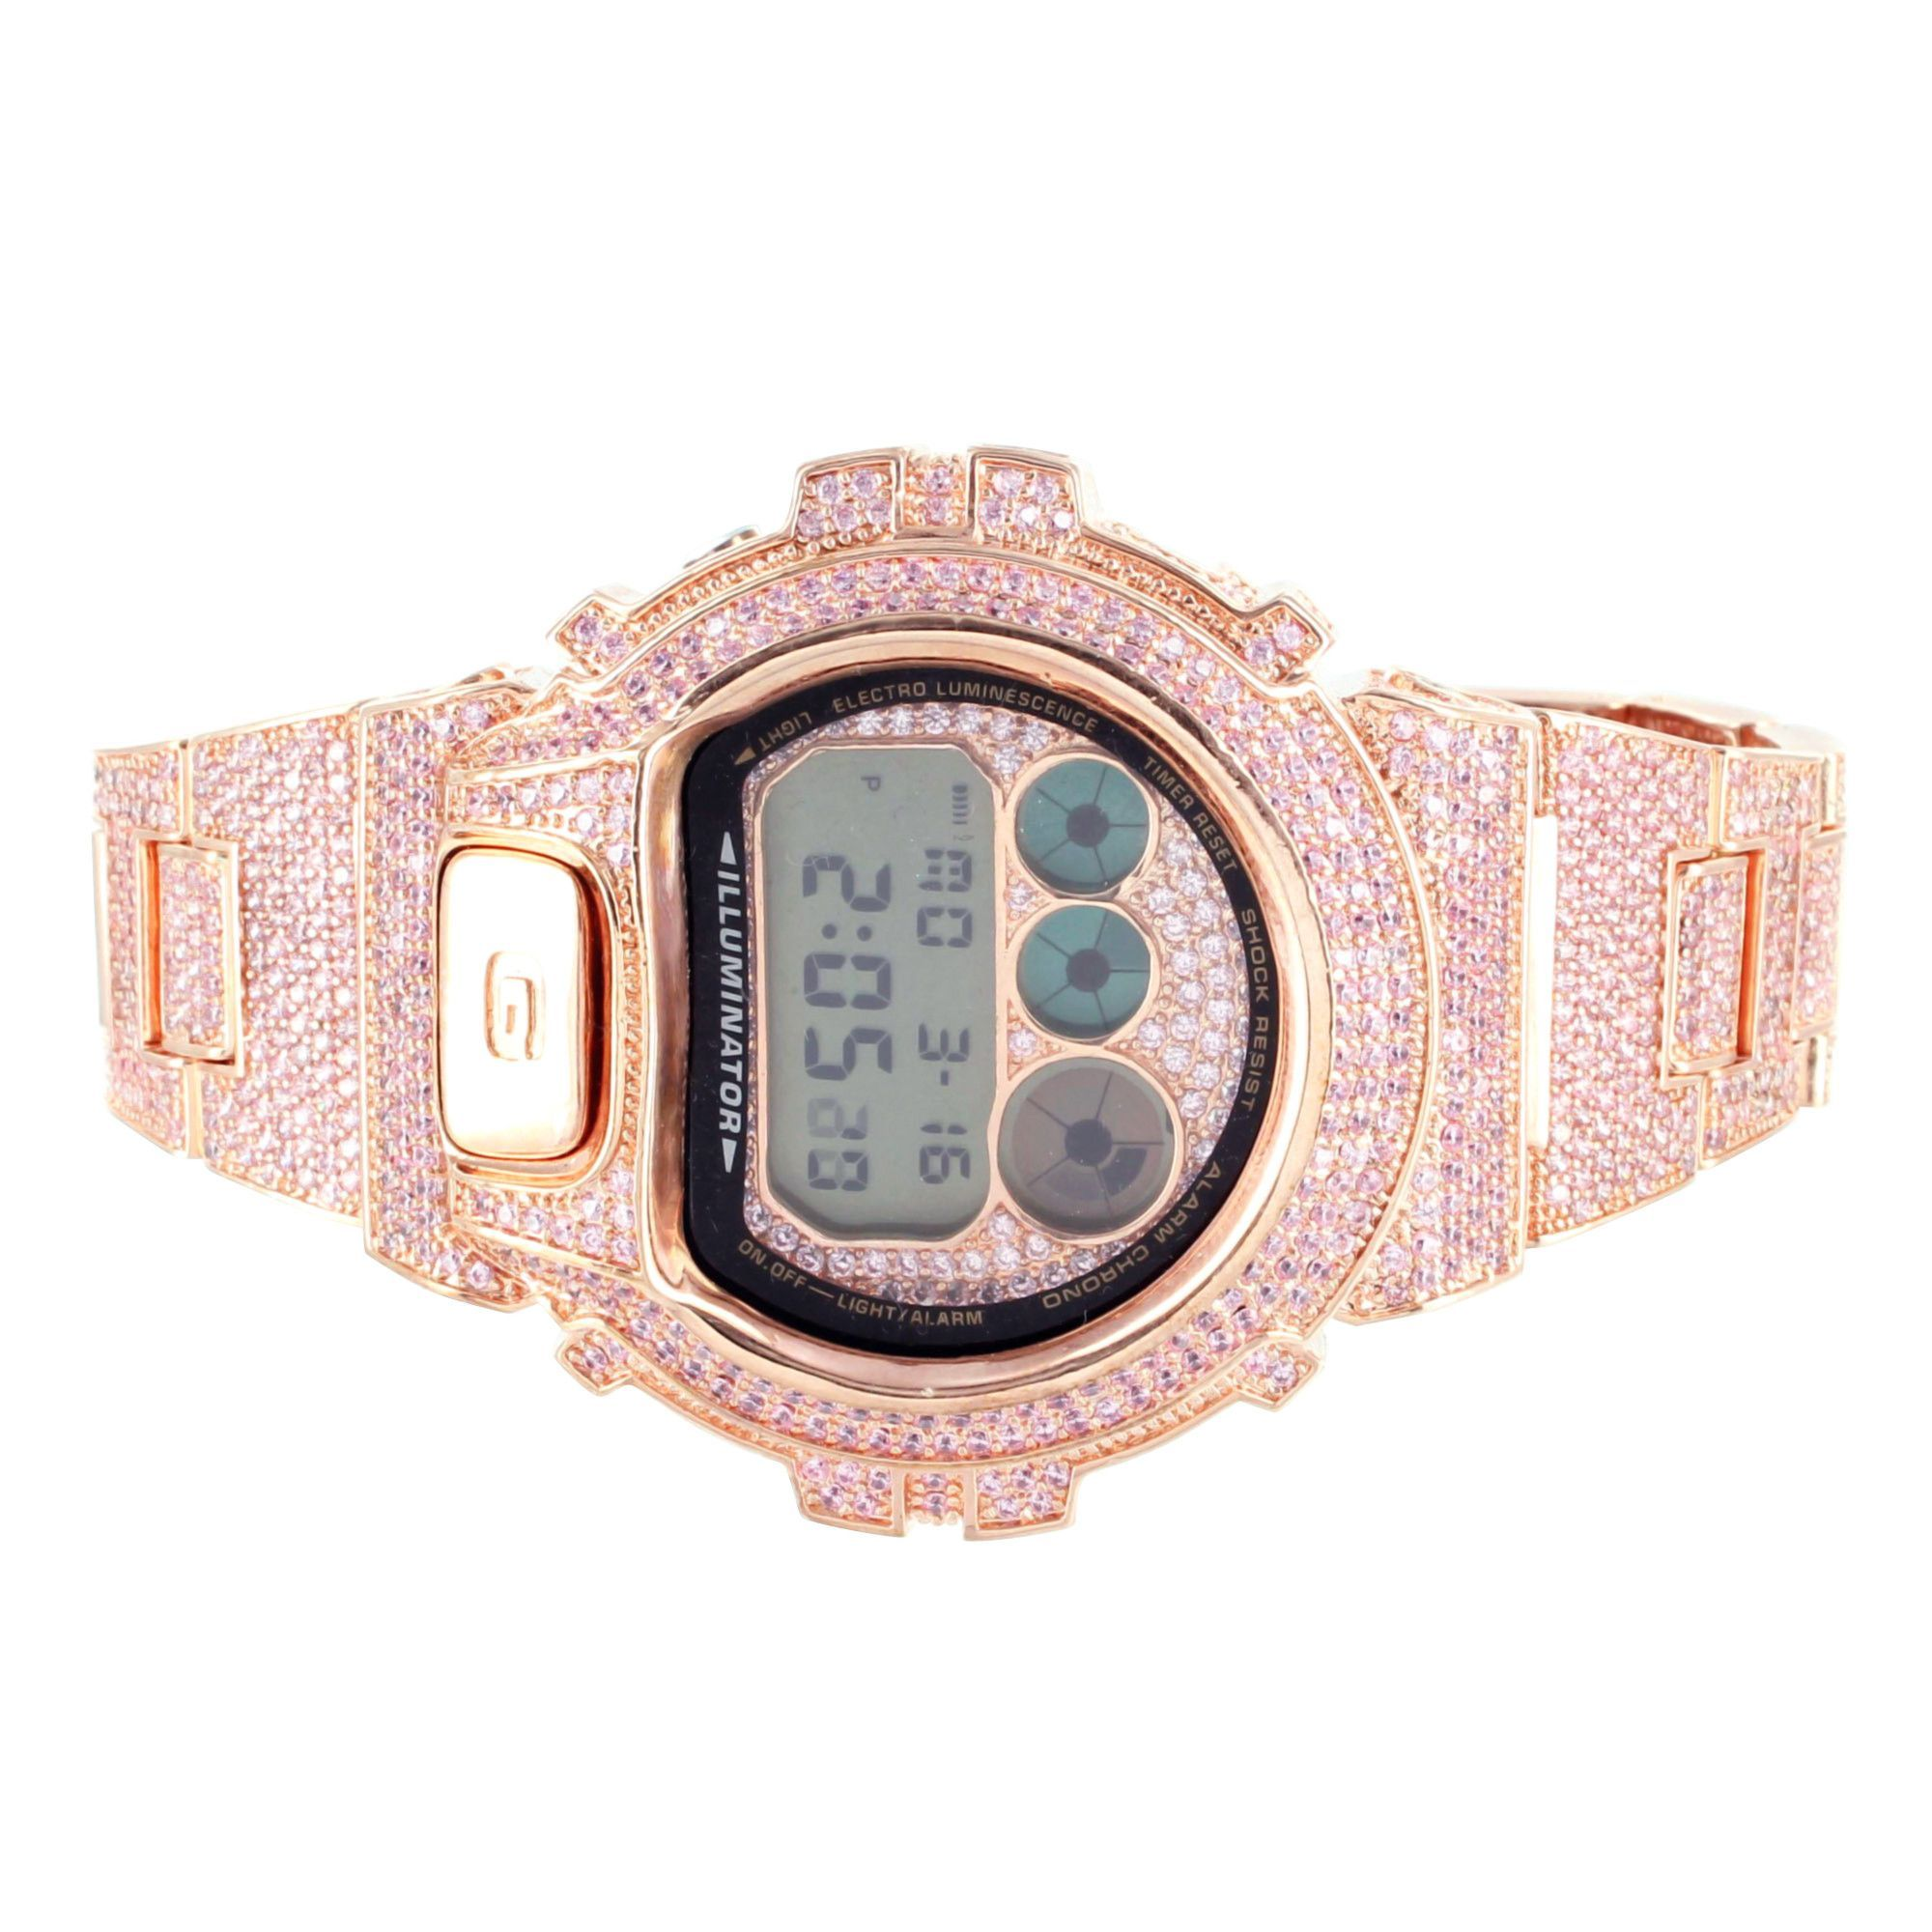 3d9693110c5b This is a womens pink simulated lab diamond G-shock Watch attached with an iced  out metal band. Stock: V0001 SKU: 271872065799 Make: G-Shock Watch ...